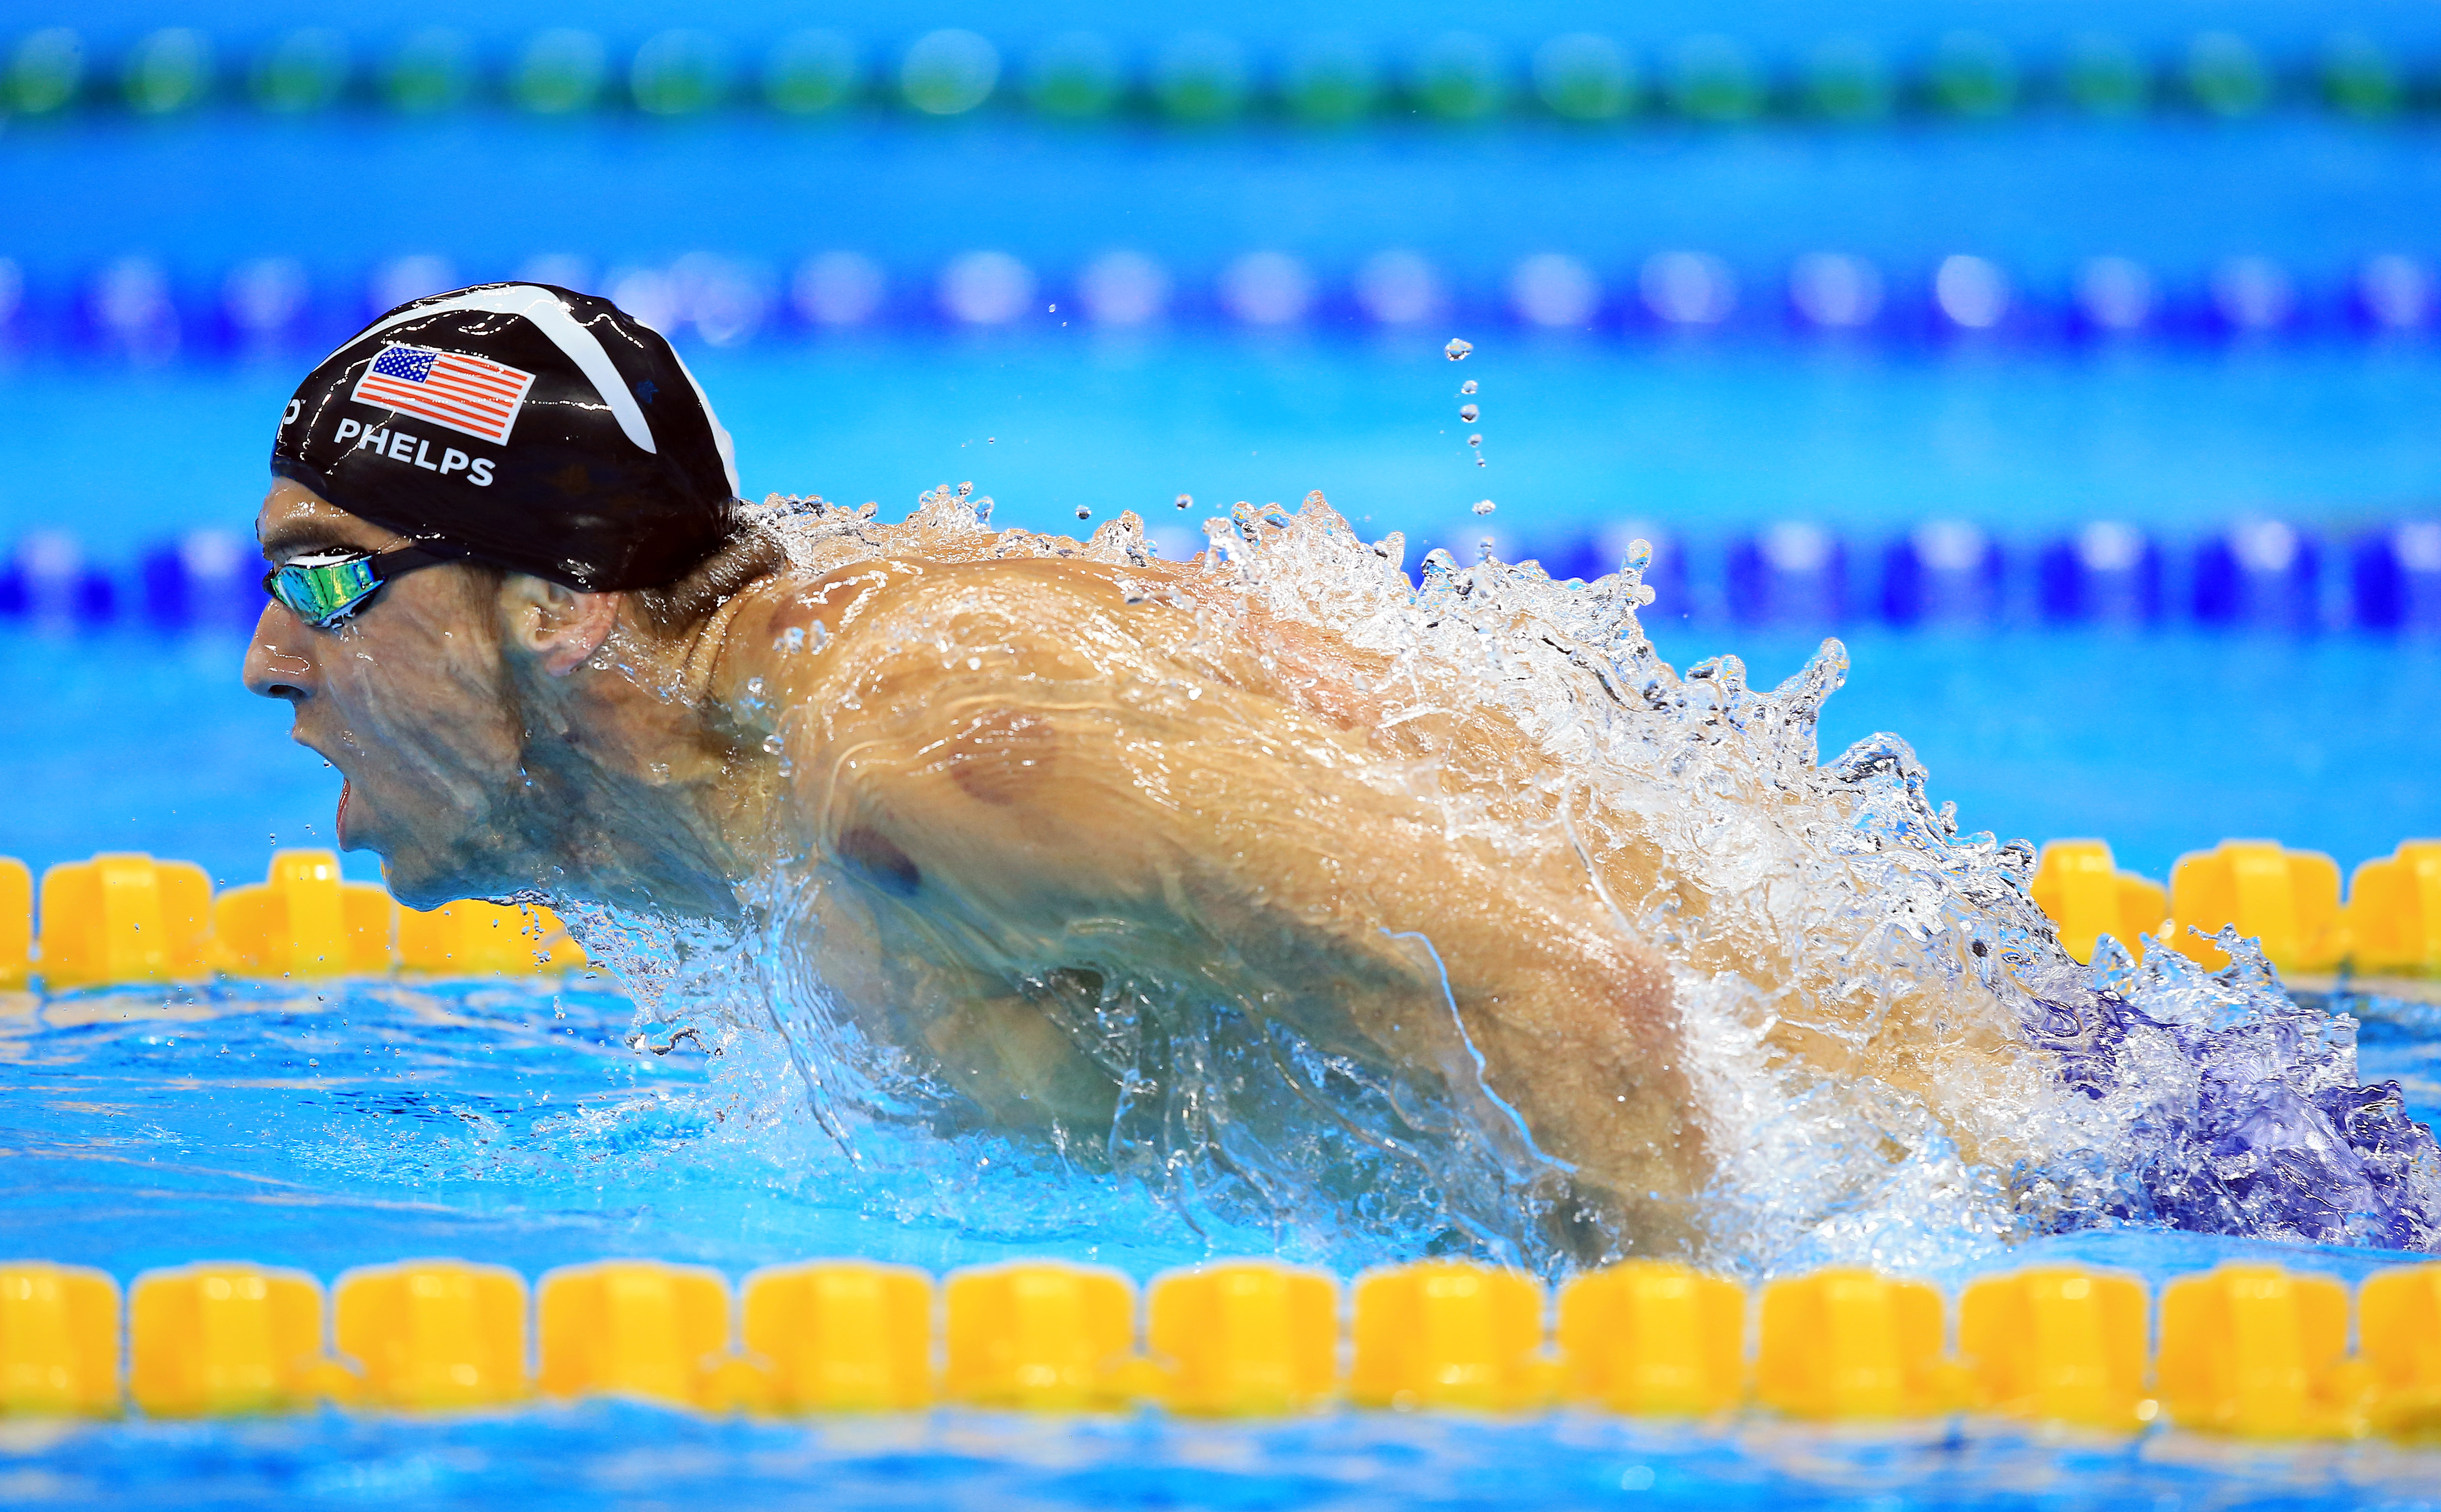 Michael Phelps of the USA wins Gold in the Men's 200m Butterfly Final on Day 4 of the Rio 2016 Olympic Games at the Olympic Aquatics Stadium on August 9, 2016 in Rio de Janerio, Brazil.